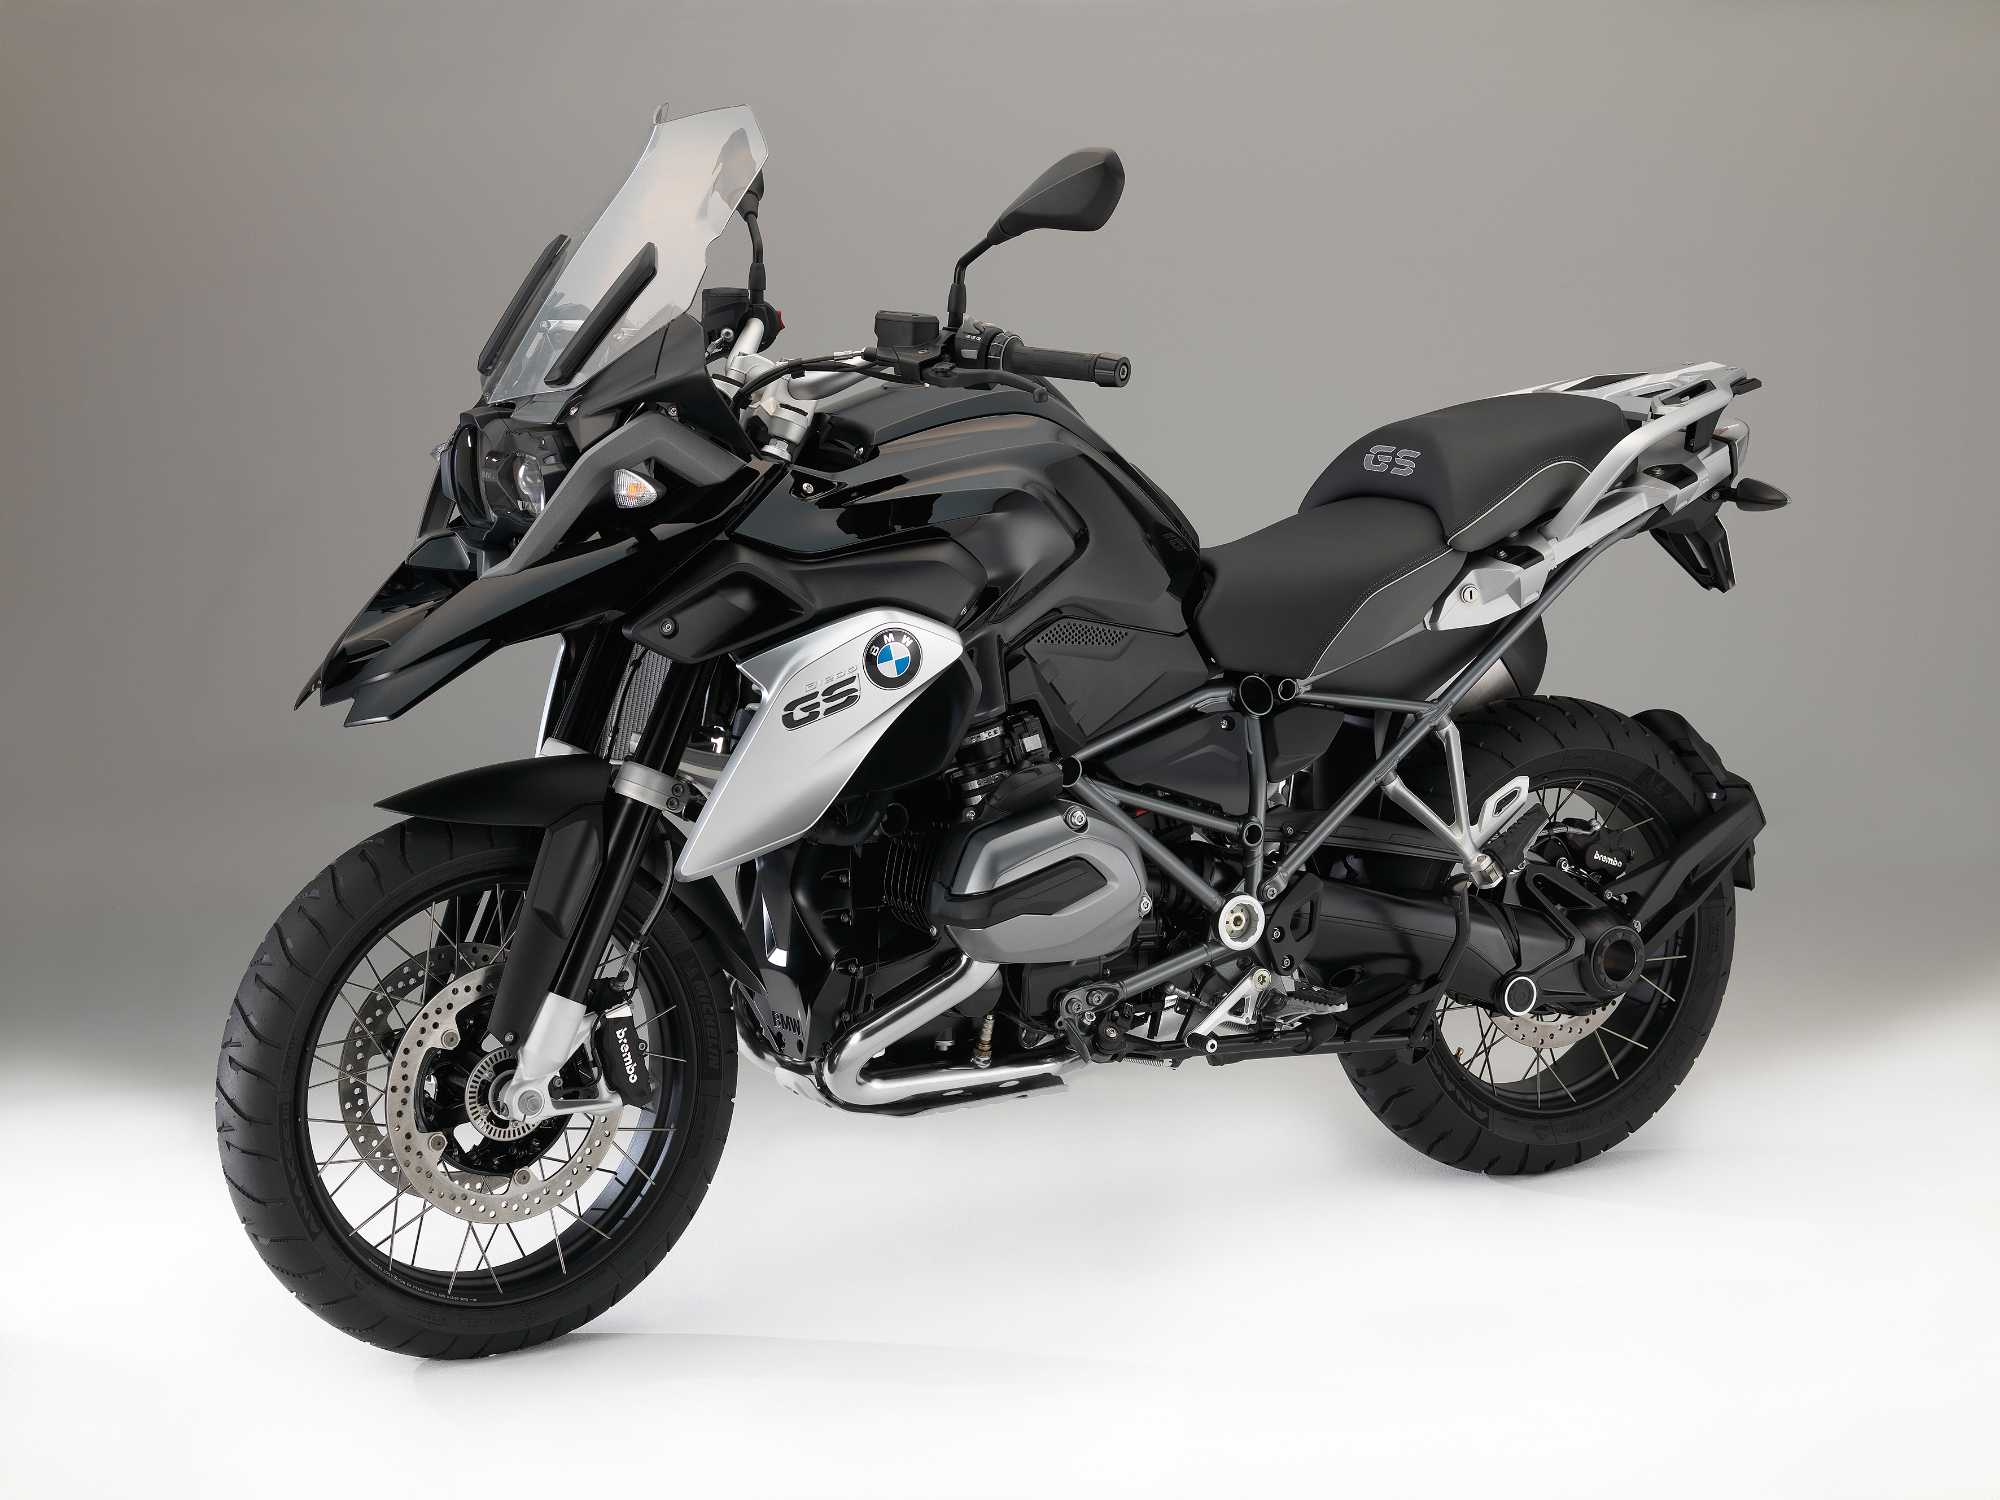 BMW R1200GS Adventure Triple Black 2013 images #8625